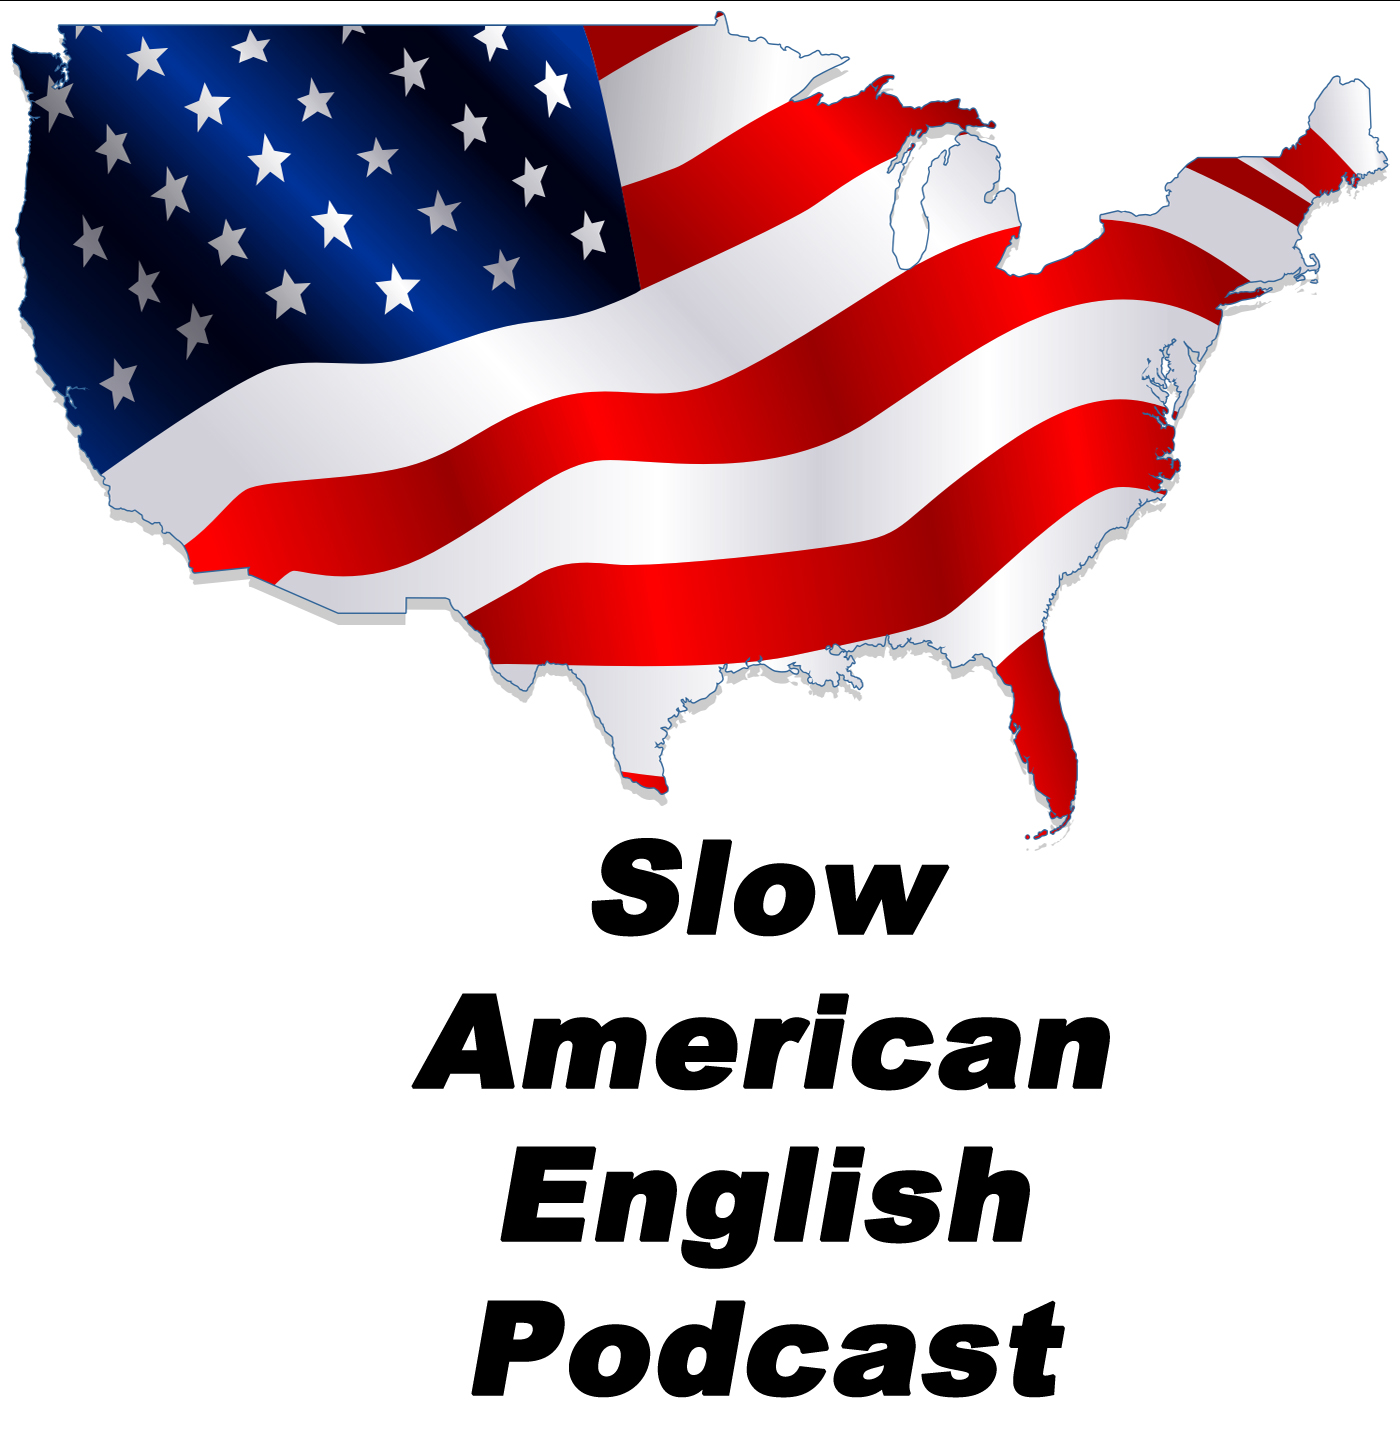 usa essay slow american english podcast by karren tolliver podcast  slow american english podcast by karren tolliver podcast episode 1502 black history month essay about black